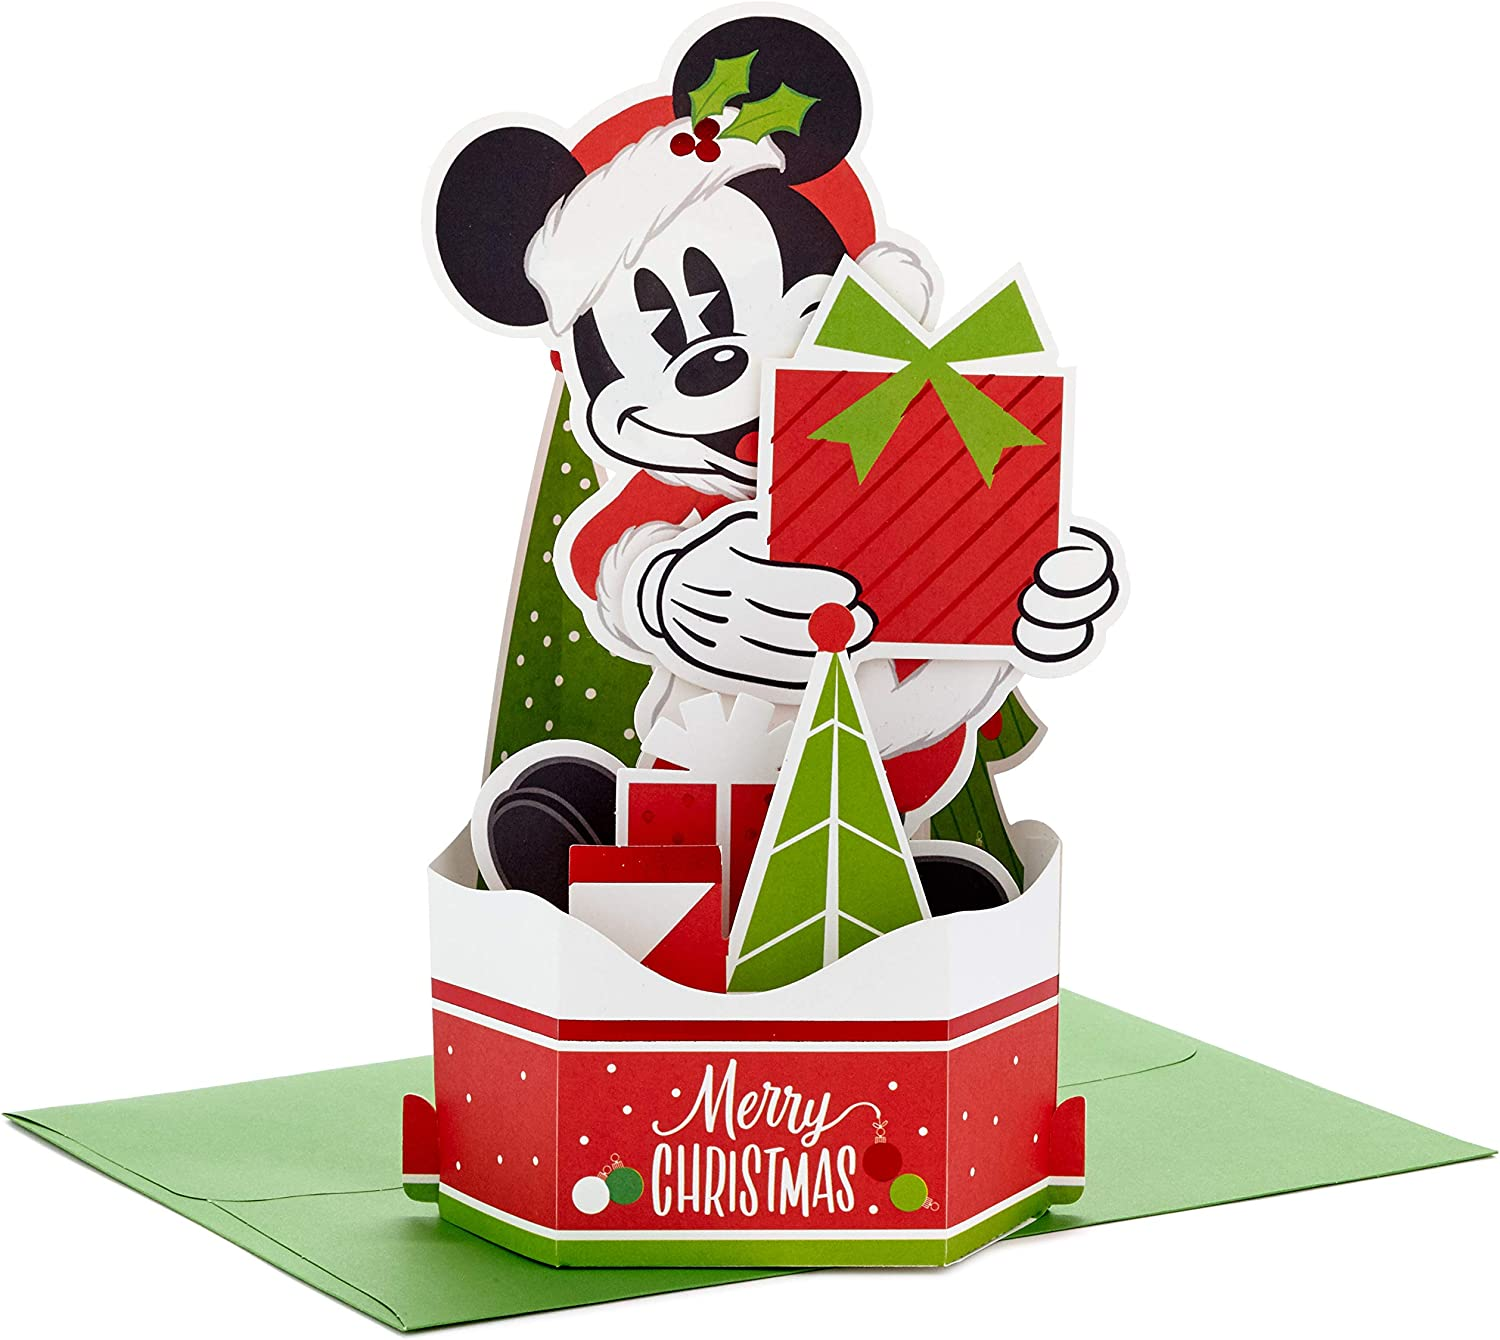 Charlie Brown Christmas Tree, Plays Christmastime is Here Hallmark Paper Wonder Peanuts Displayable Pop Up Christmas Card with Light and Sound